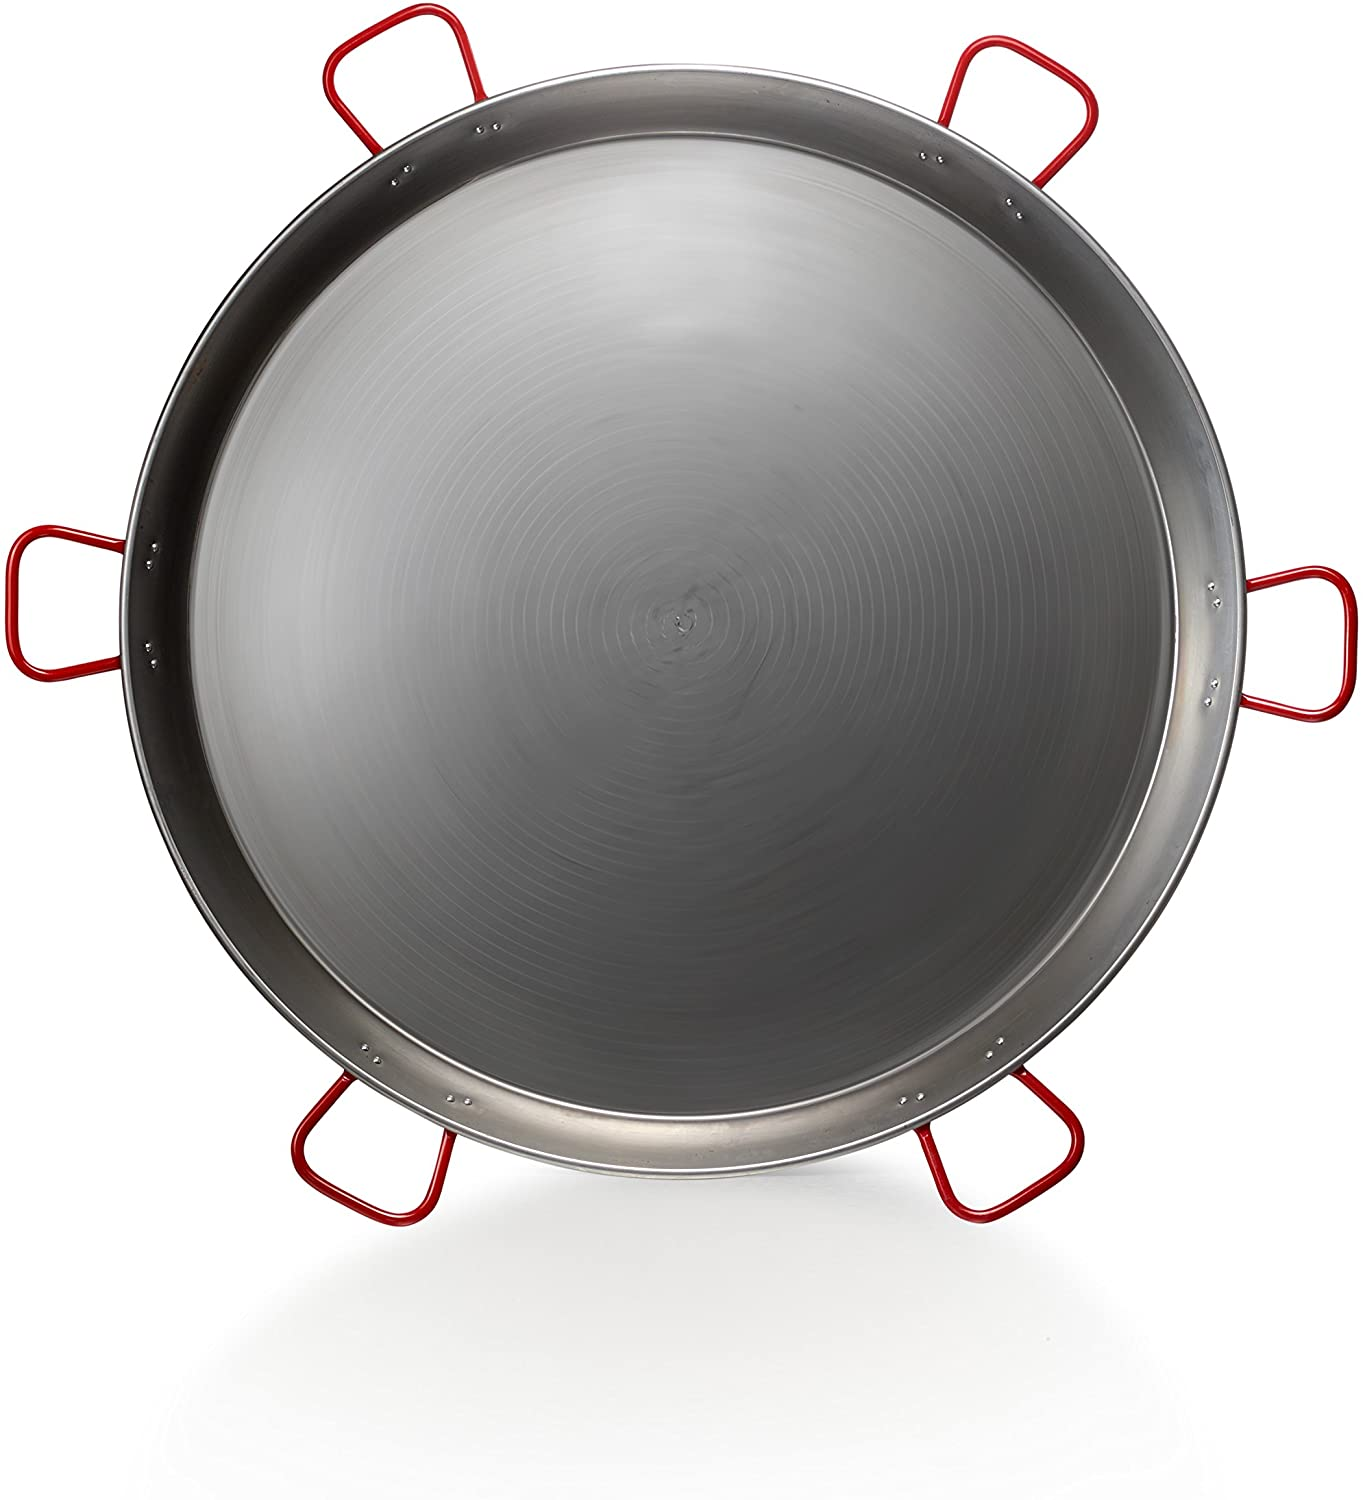 Paella Pan - Polished Steel - 52 inch (130 cm) / 200 servings